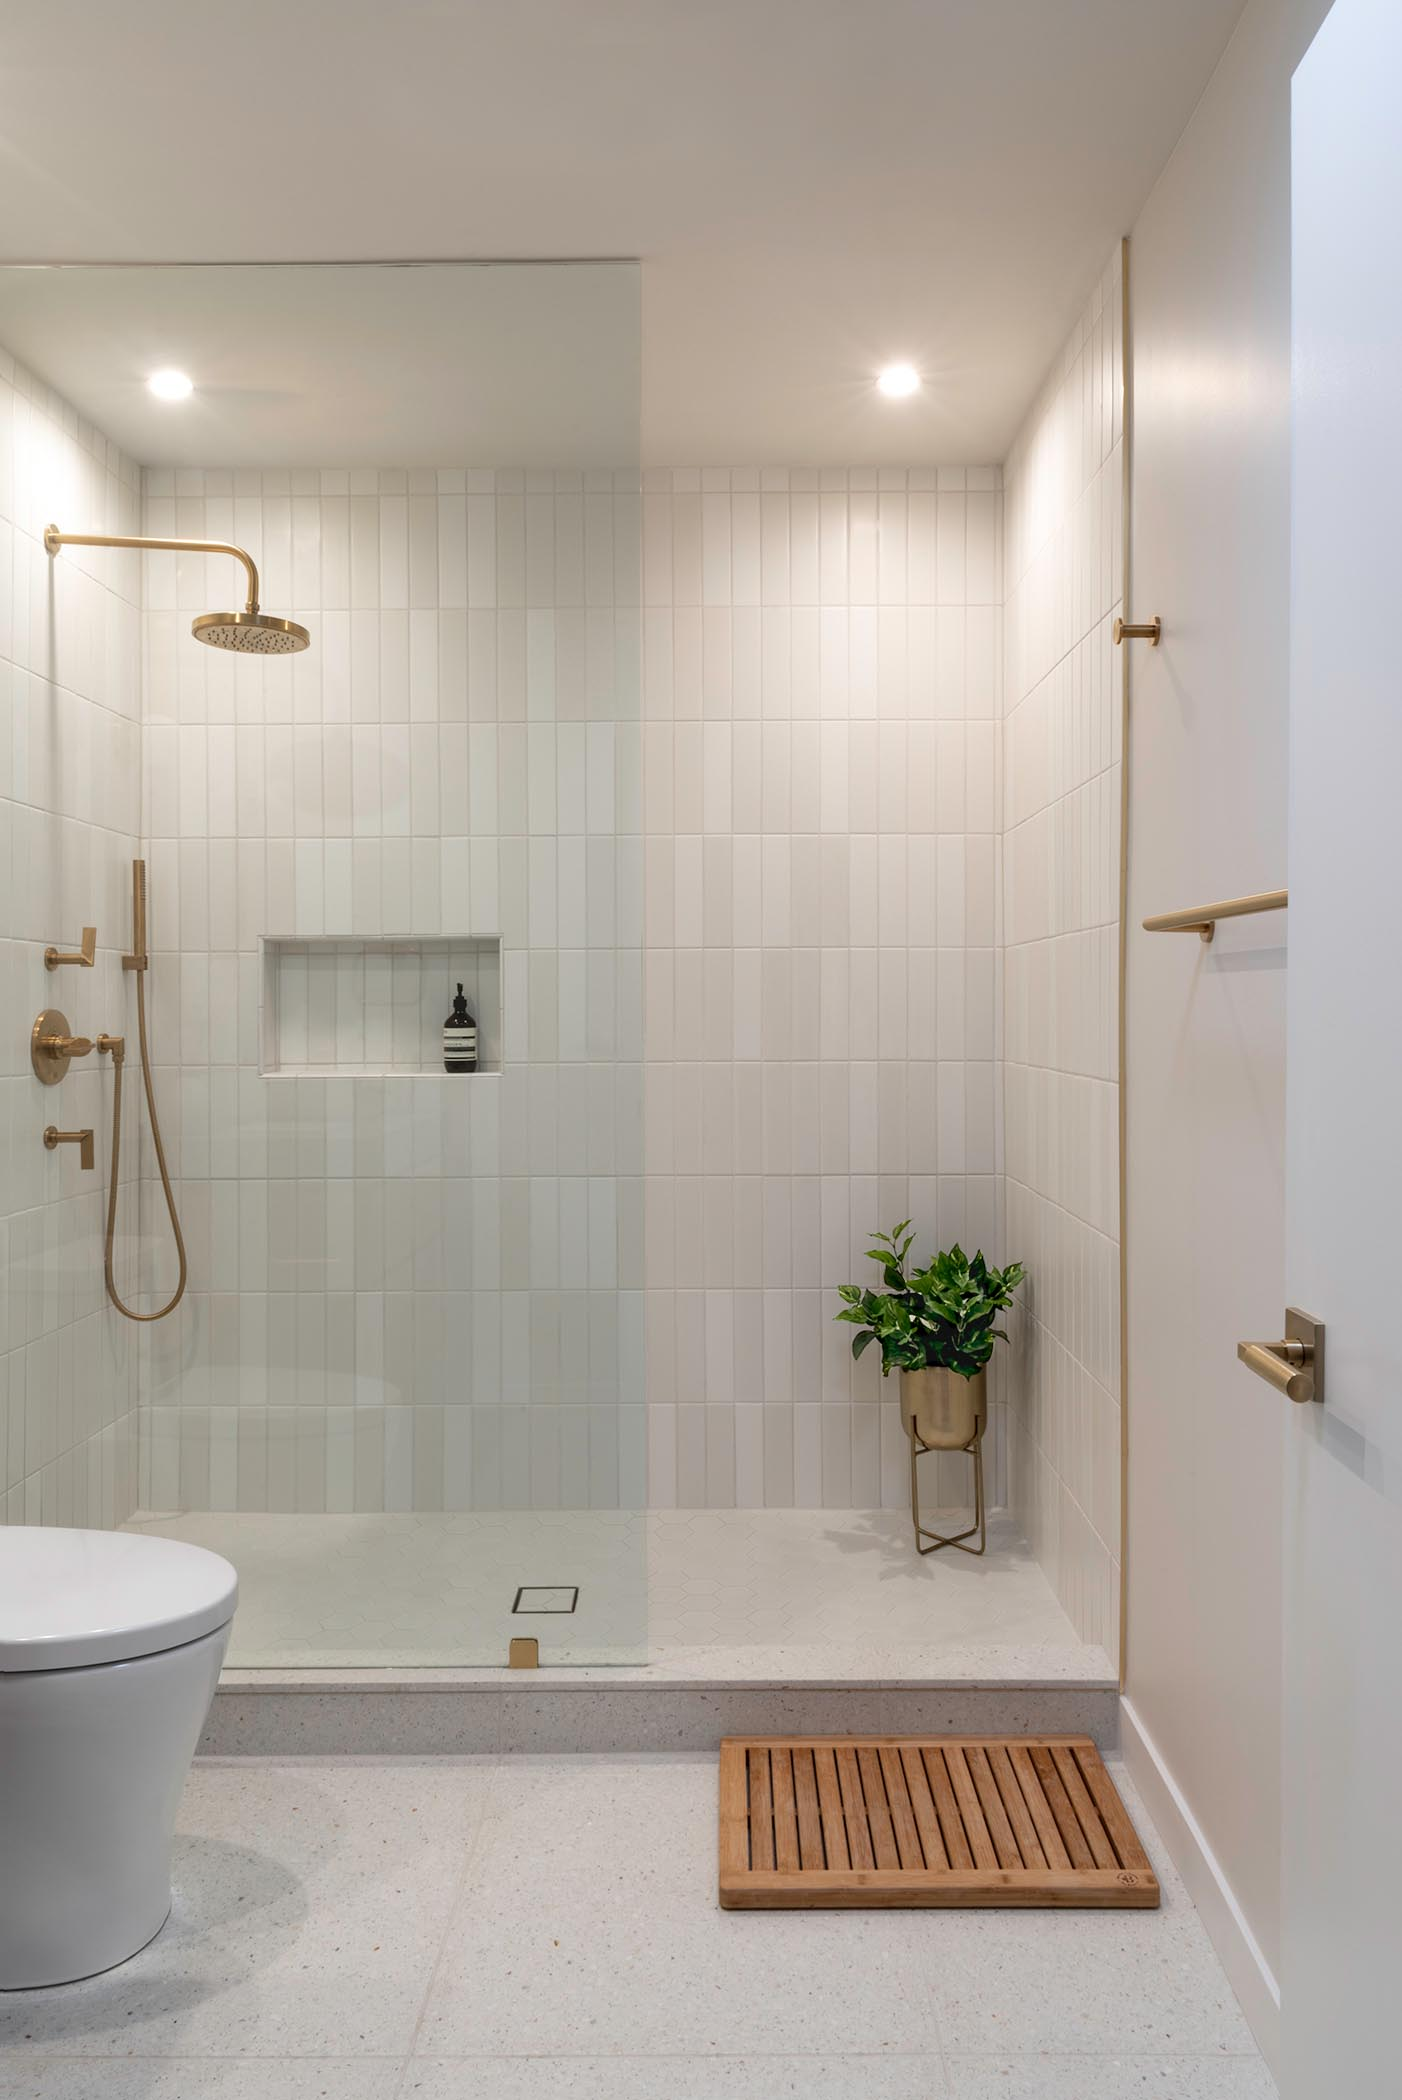 In this bathroom, there's a walk-in shower with shower niche and a seamless shower screen, white wall tiles, satin brass fixtures, and  Terrazo floor and shower curb.